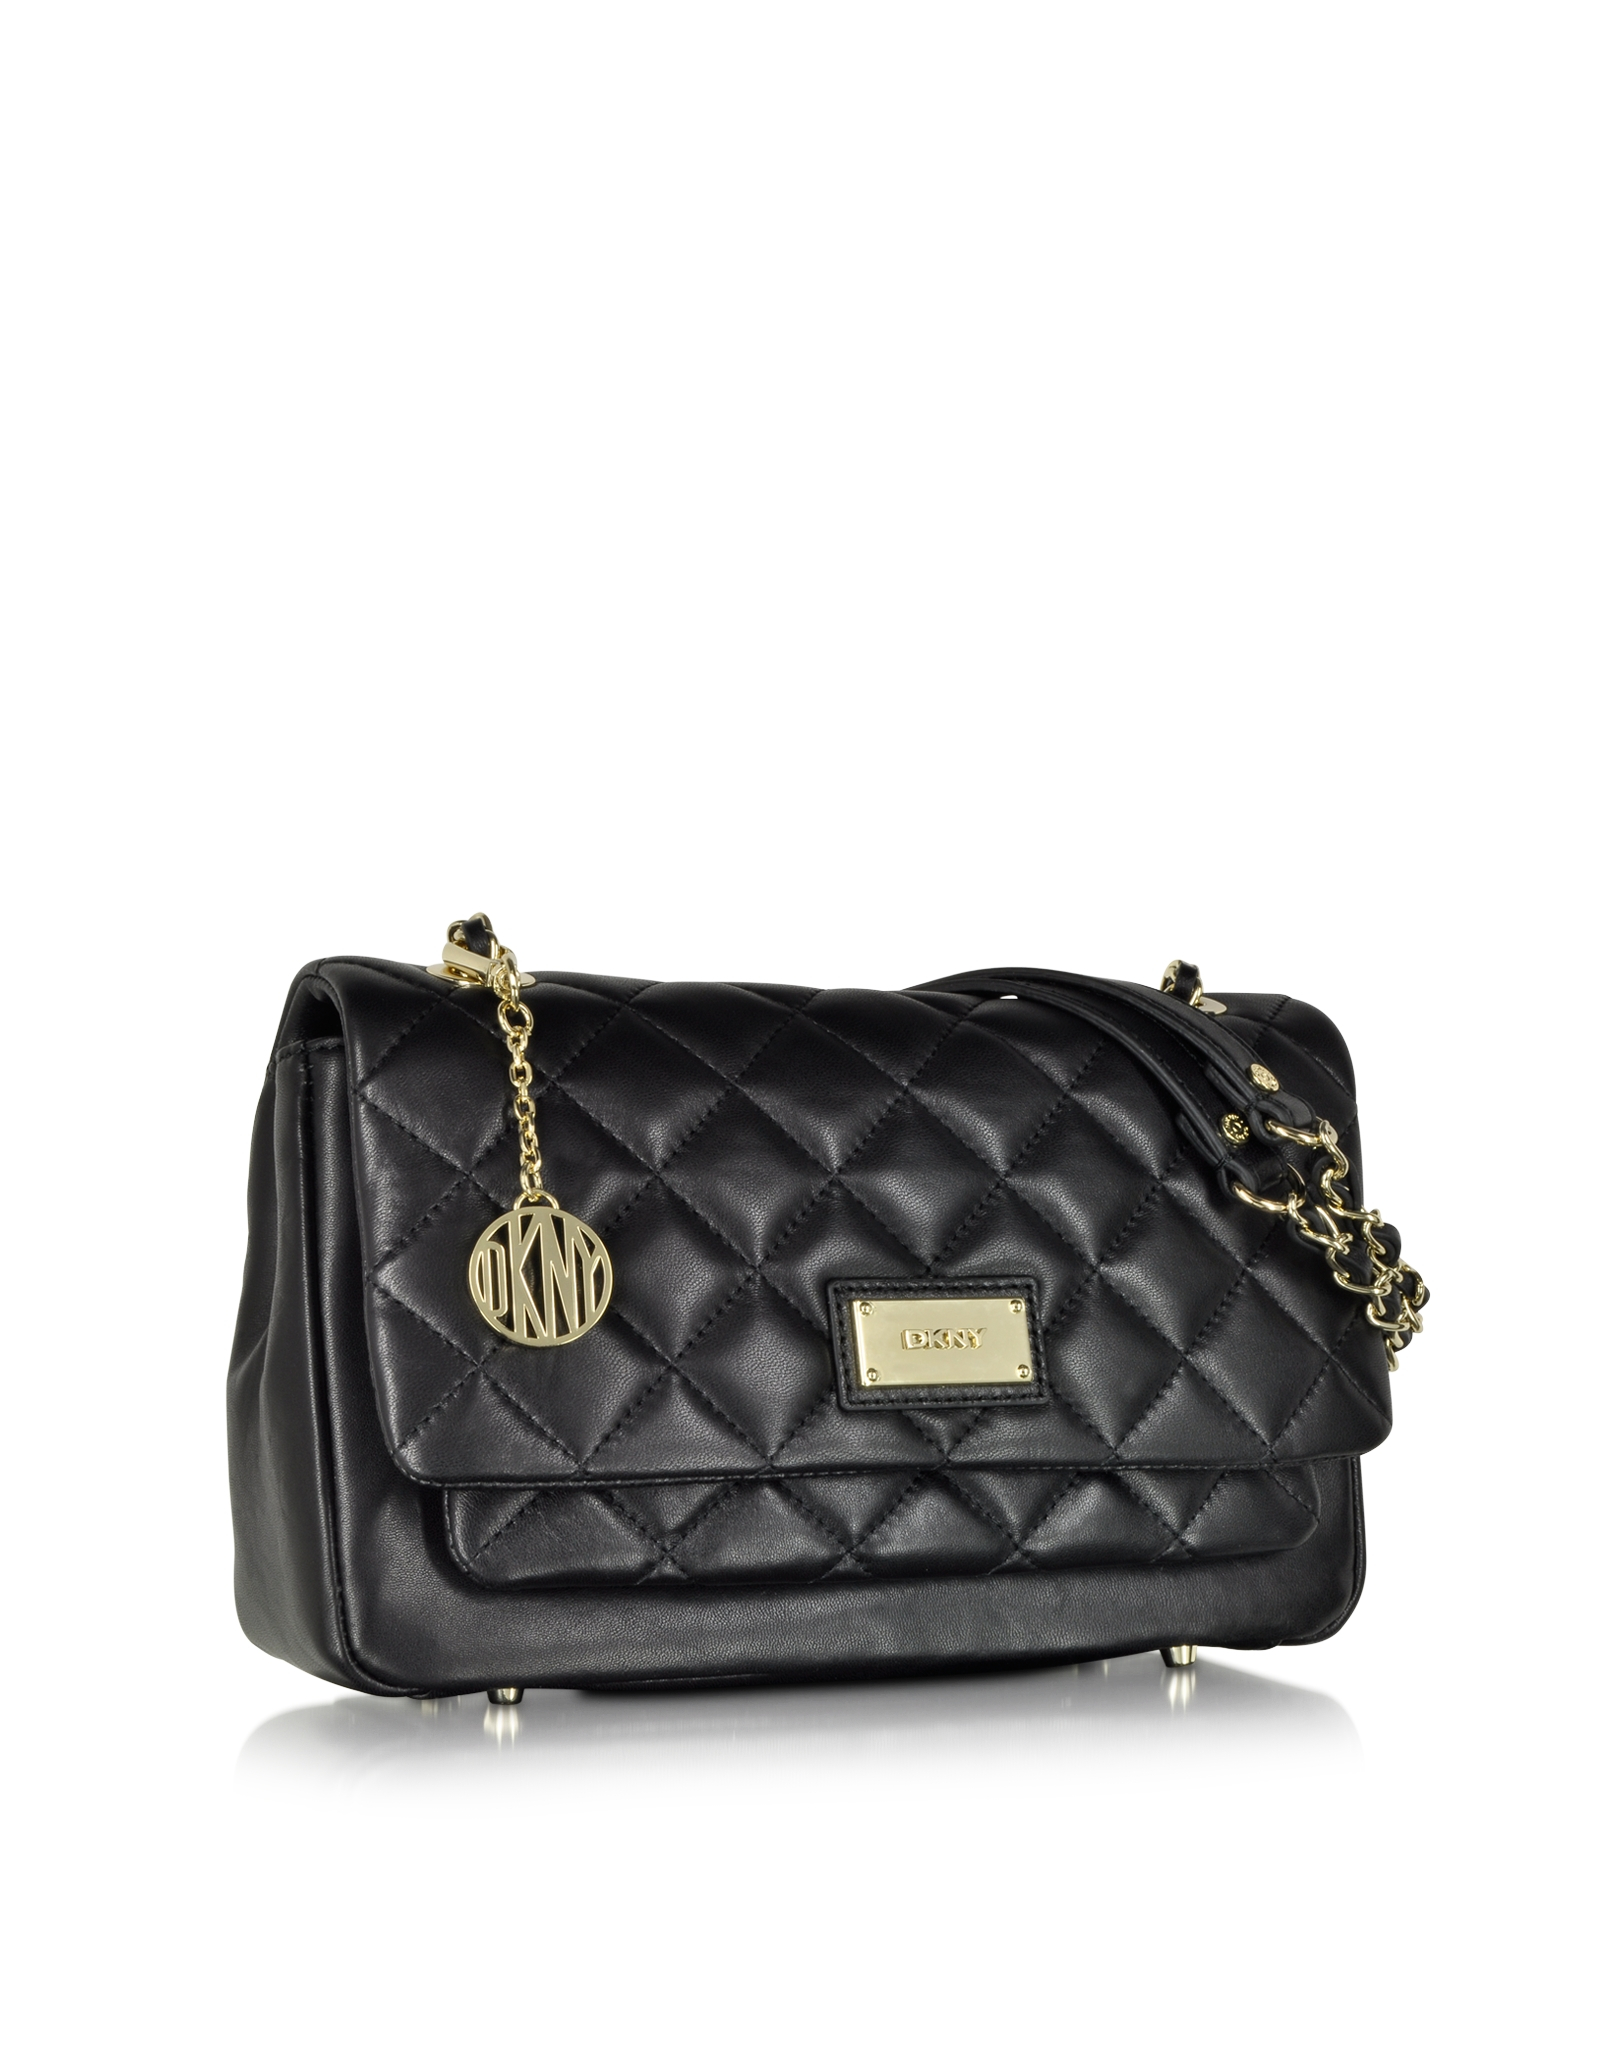 Leather quilted handbags and purses - Gallery